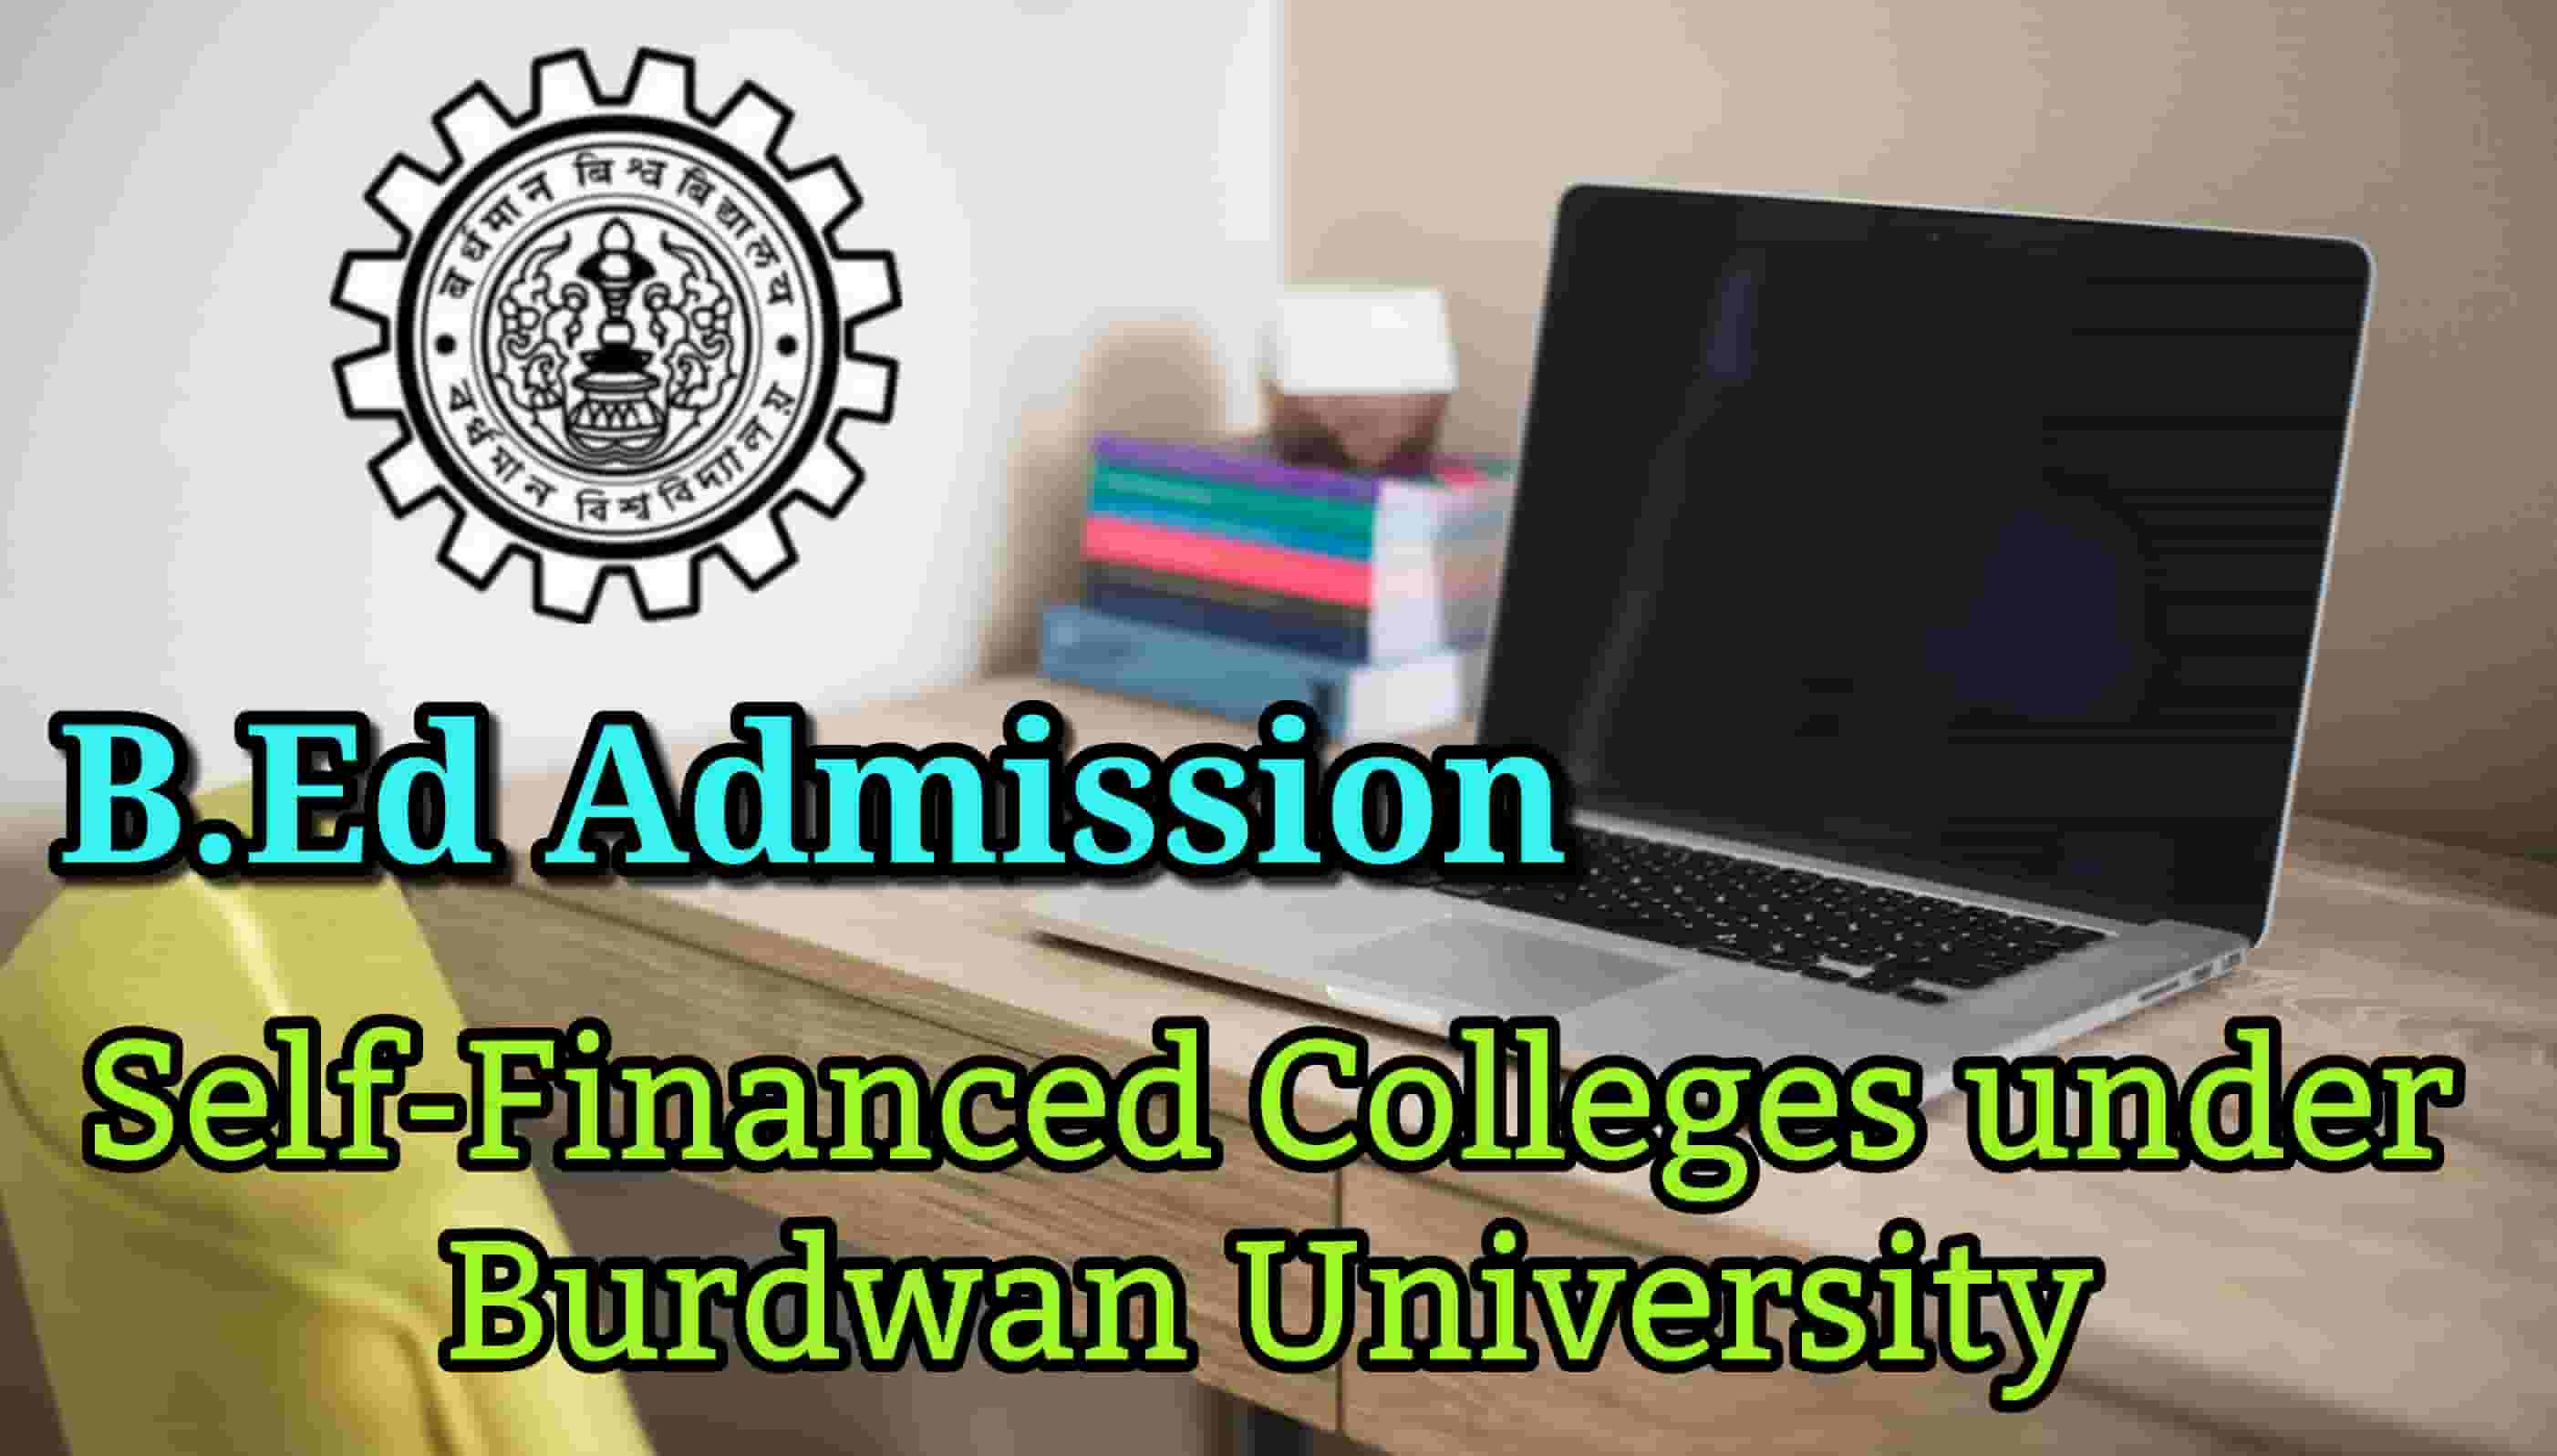 B.Ed Admission 2019 under Burdwan University